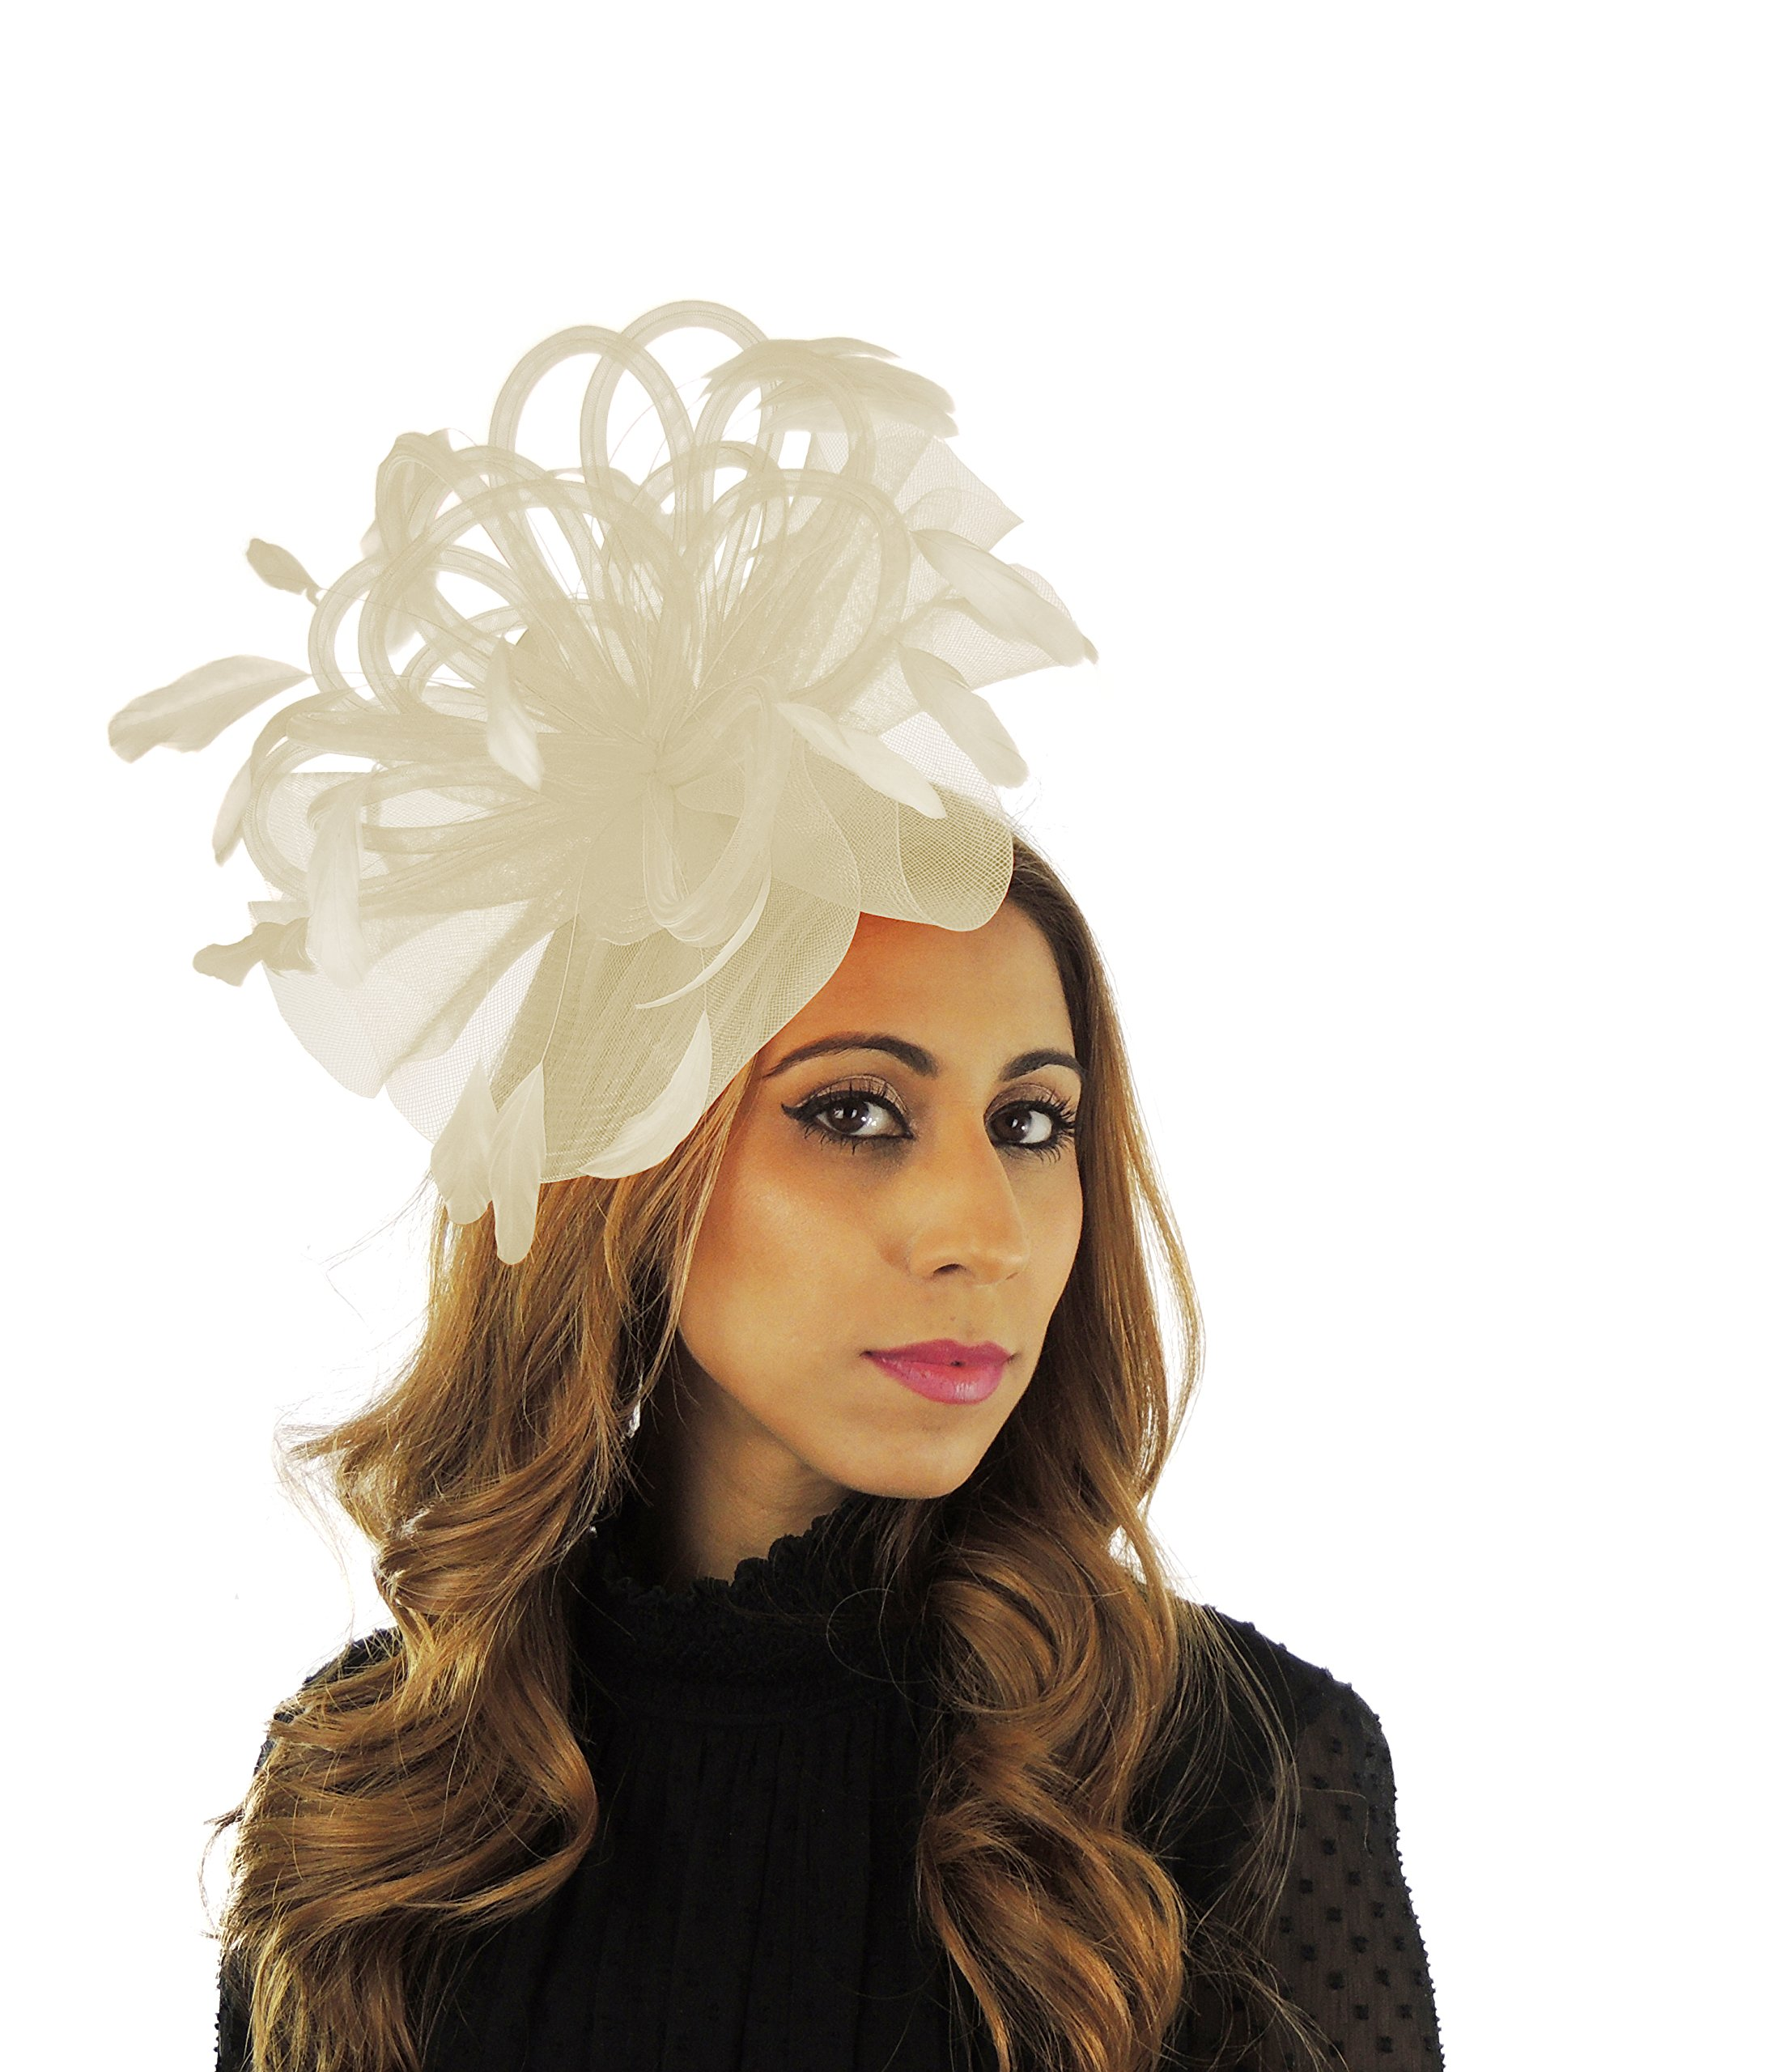 Hats By Cressida Black Velvet 8 Inch Sheer Ascot Kentucky Derby Fascinator Hat With Headband - Cream